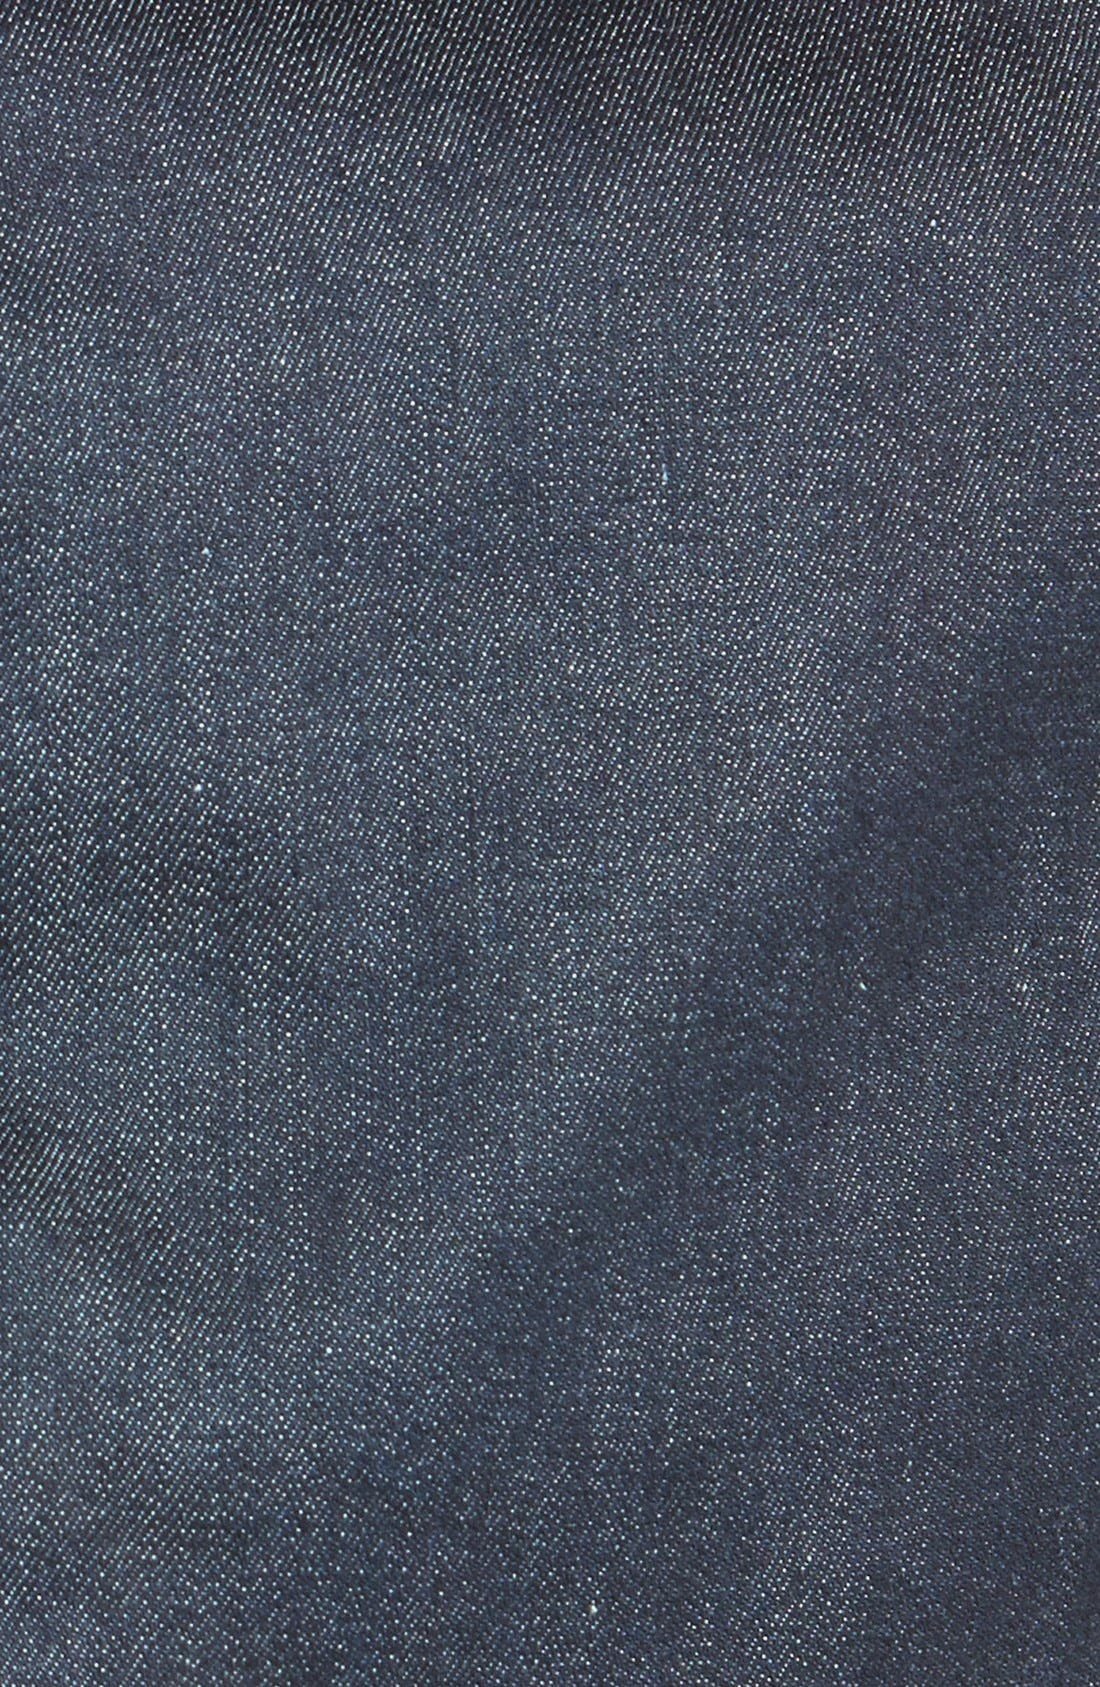 Denim Tank,                             Alternate thumbnail 3, color,                             400